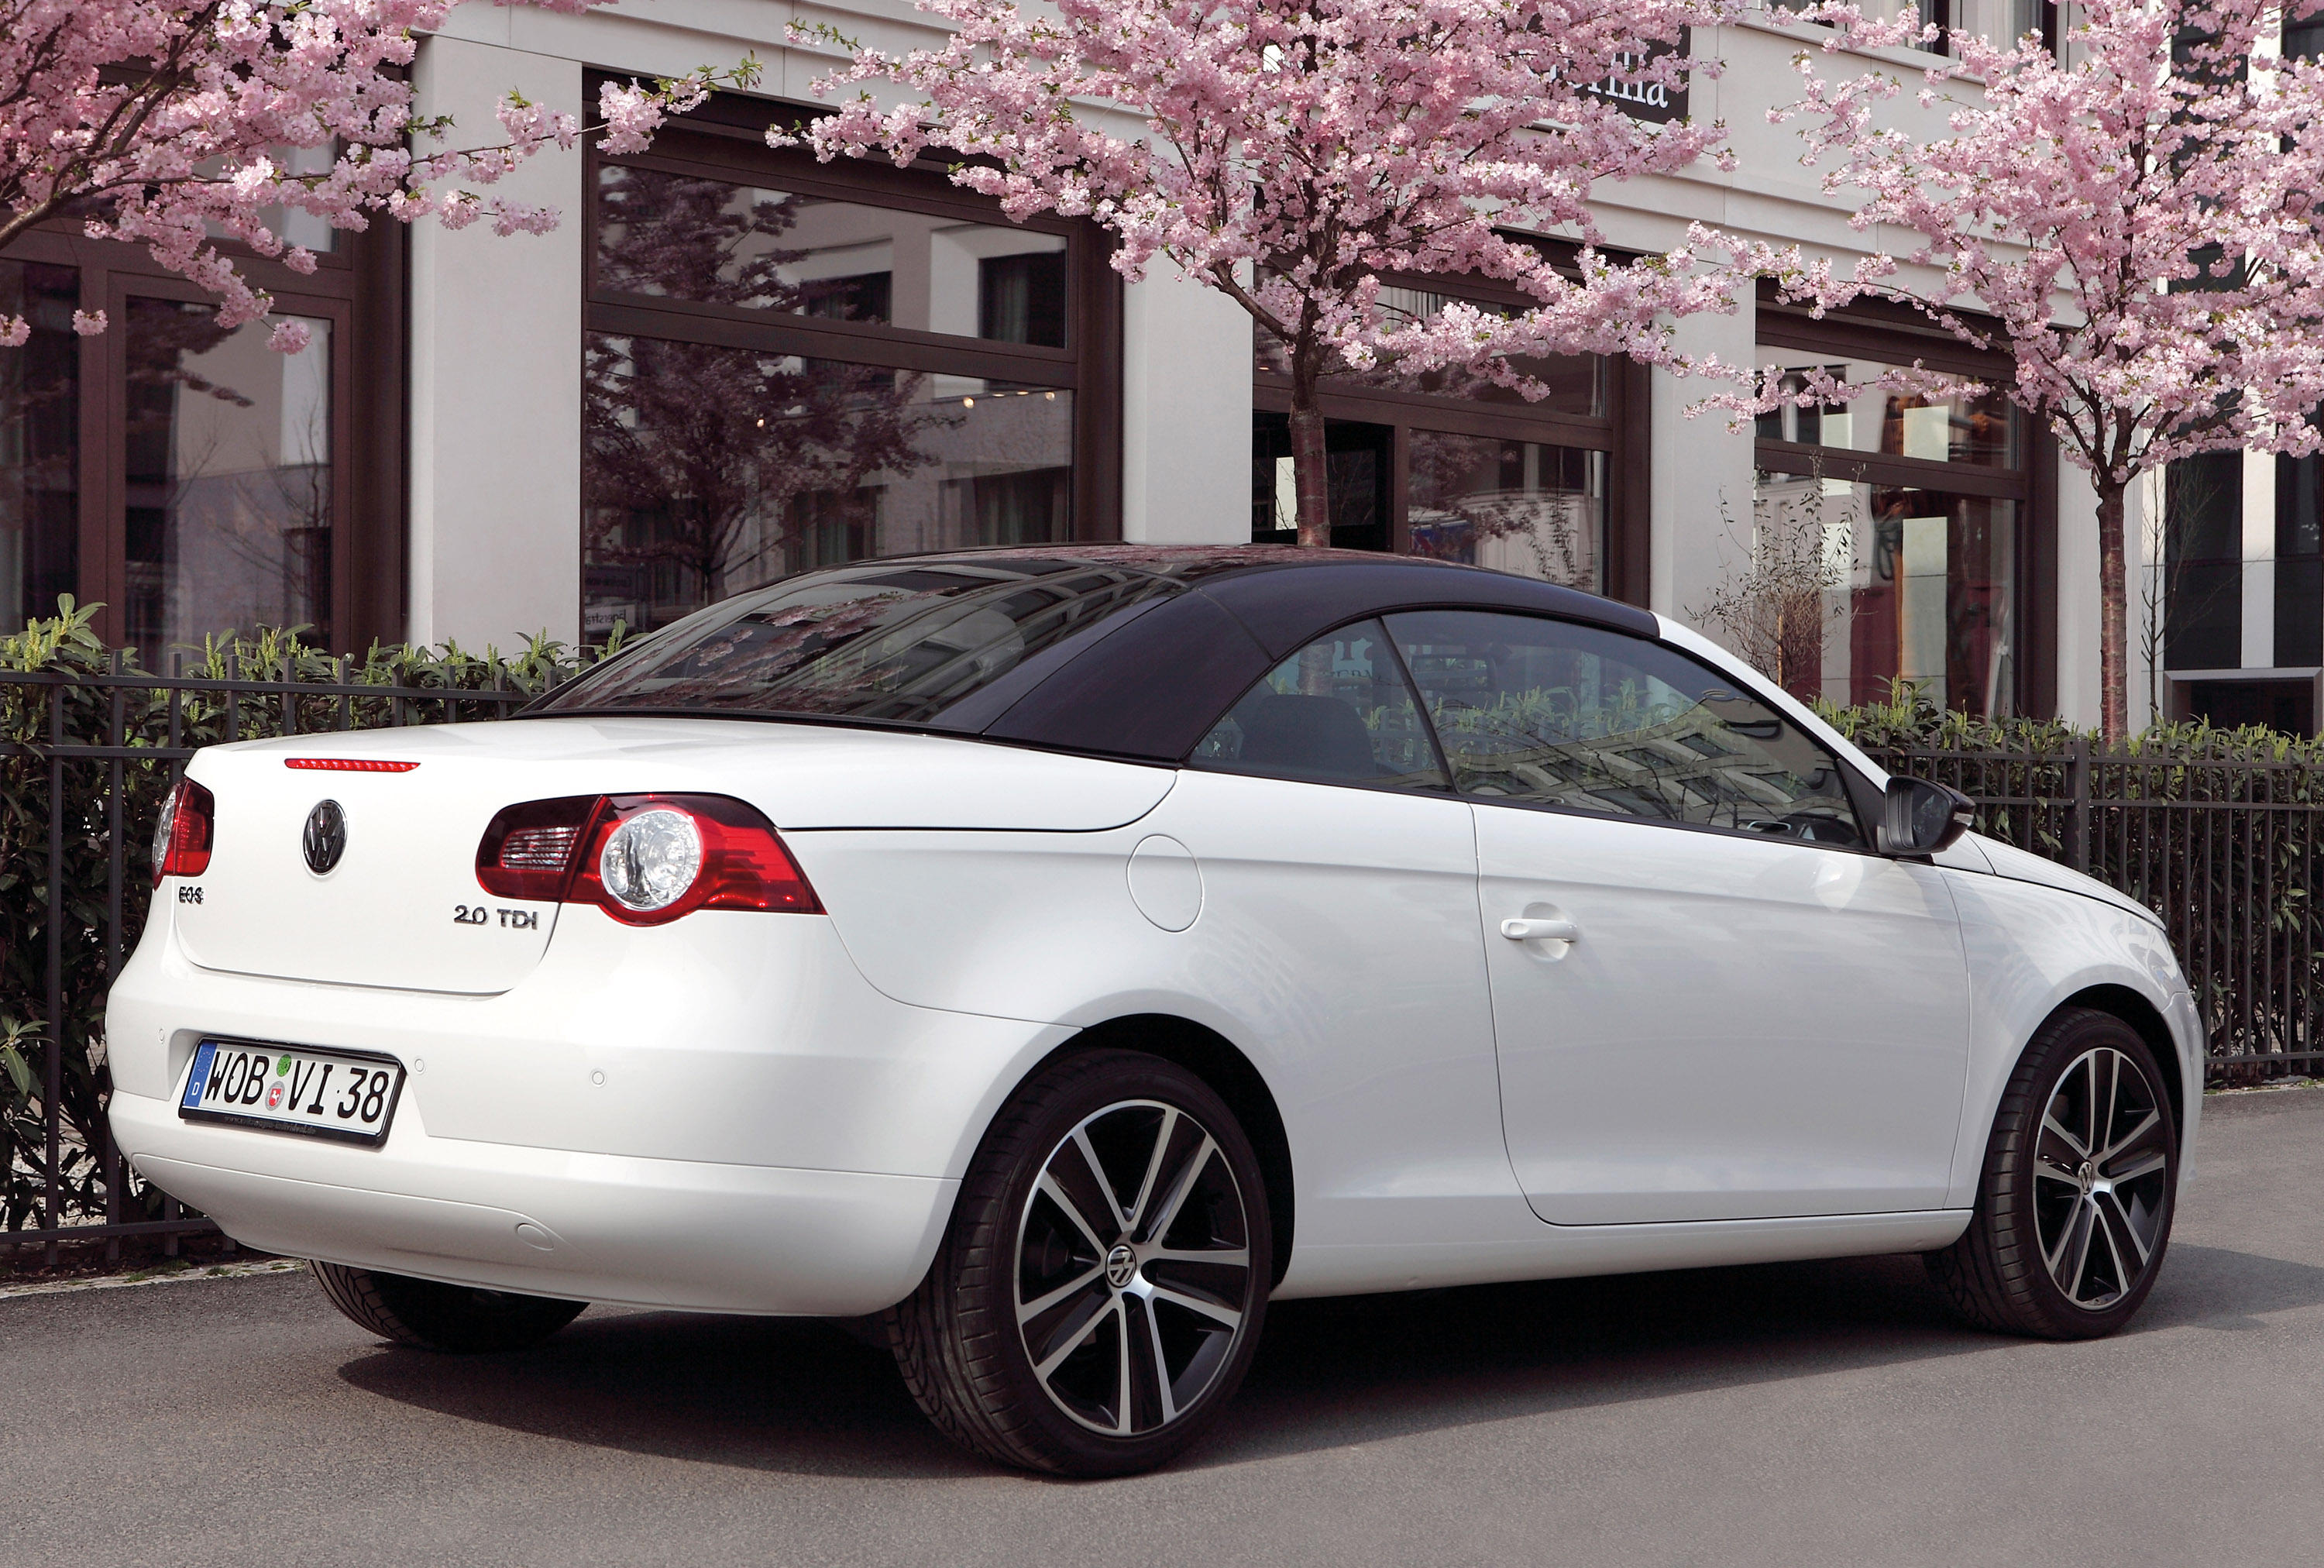 Volkswagen Eos White Night The Art Of The Constrast